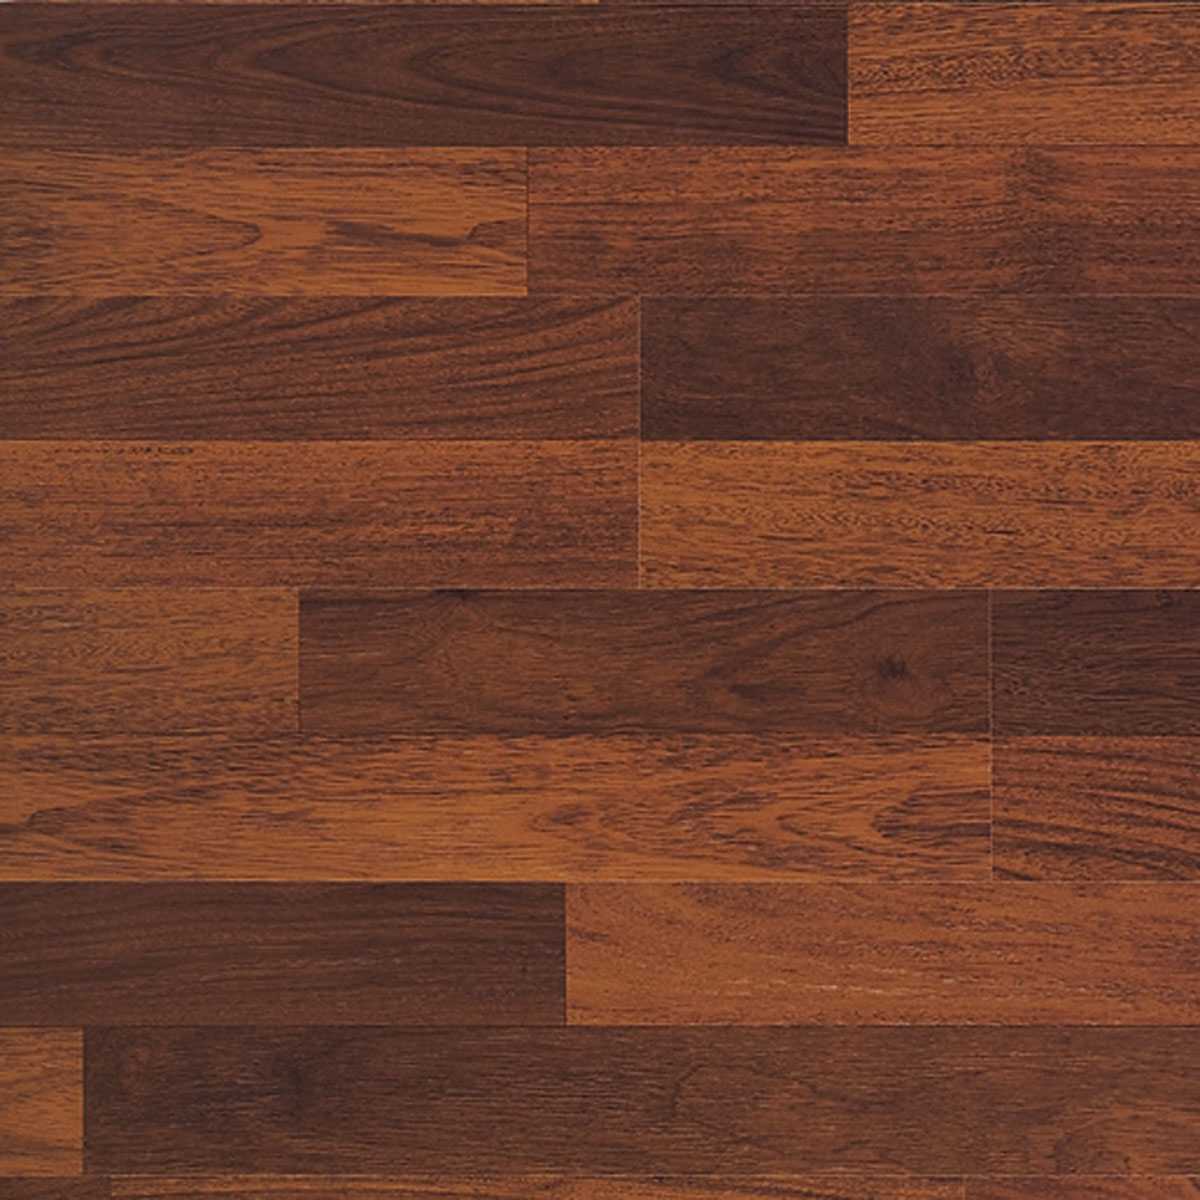 Laminate flooring hardwood and laminate flooring for Laminated wood